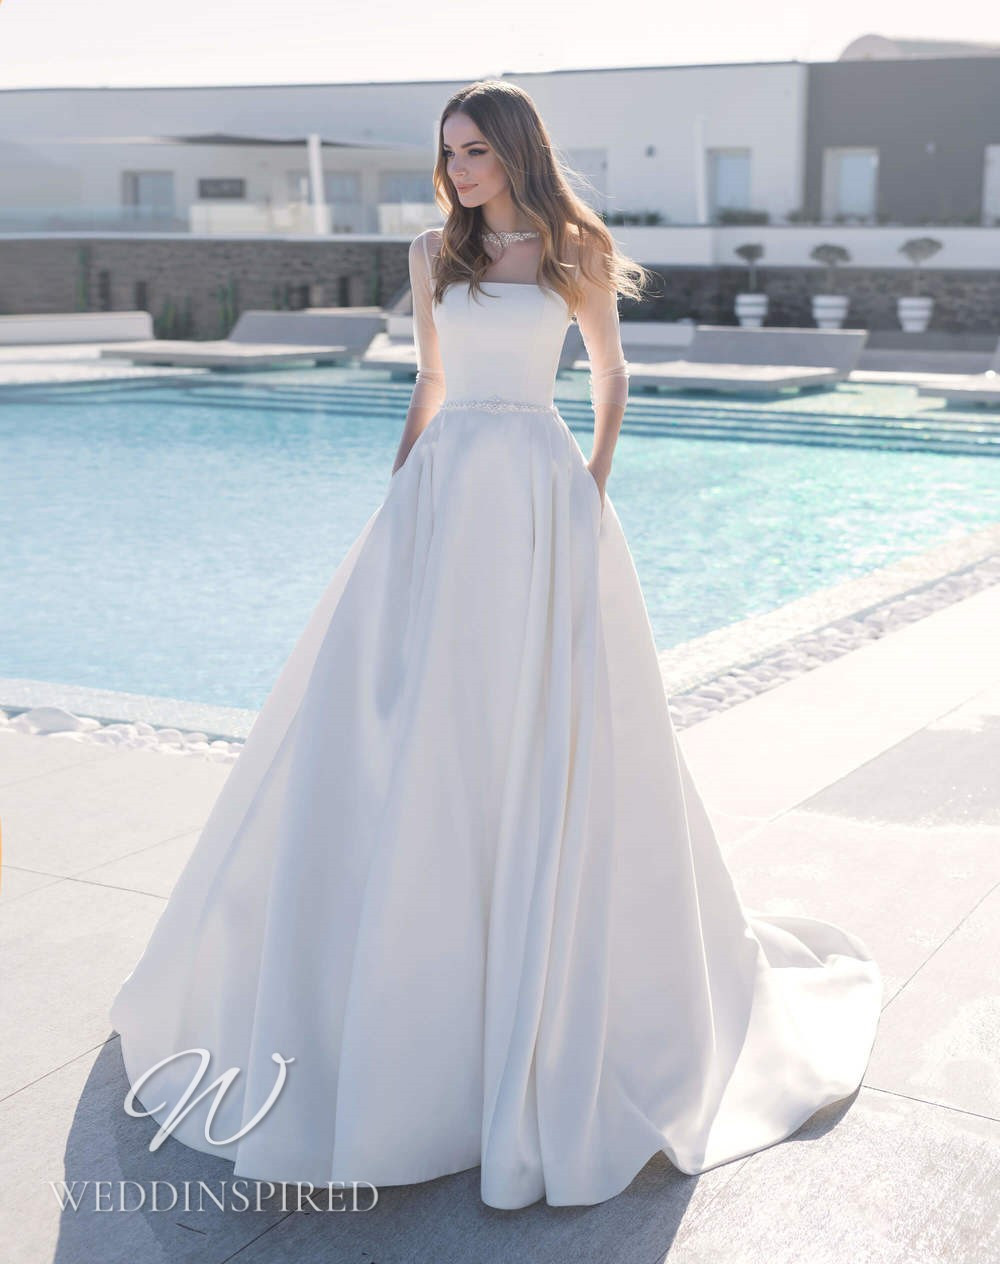 A Blunny 2021 satin A-line wedding dress with long sleeves